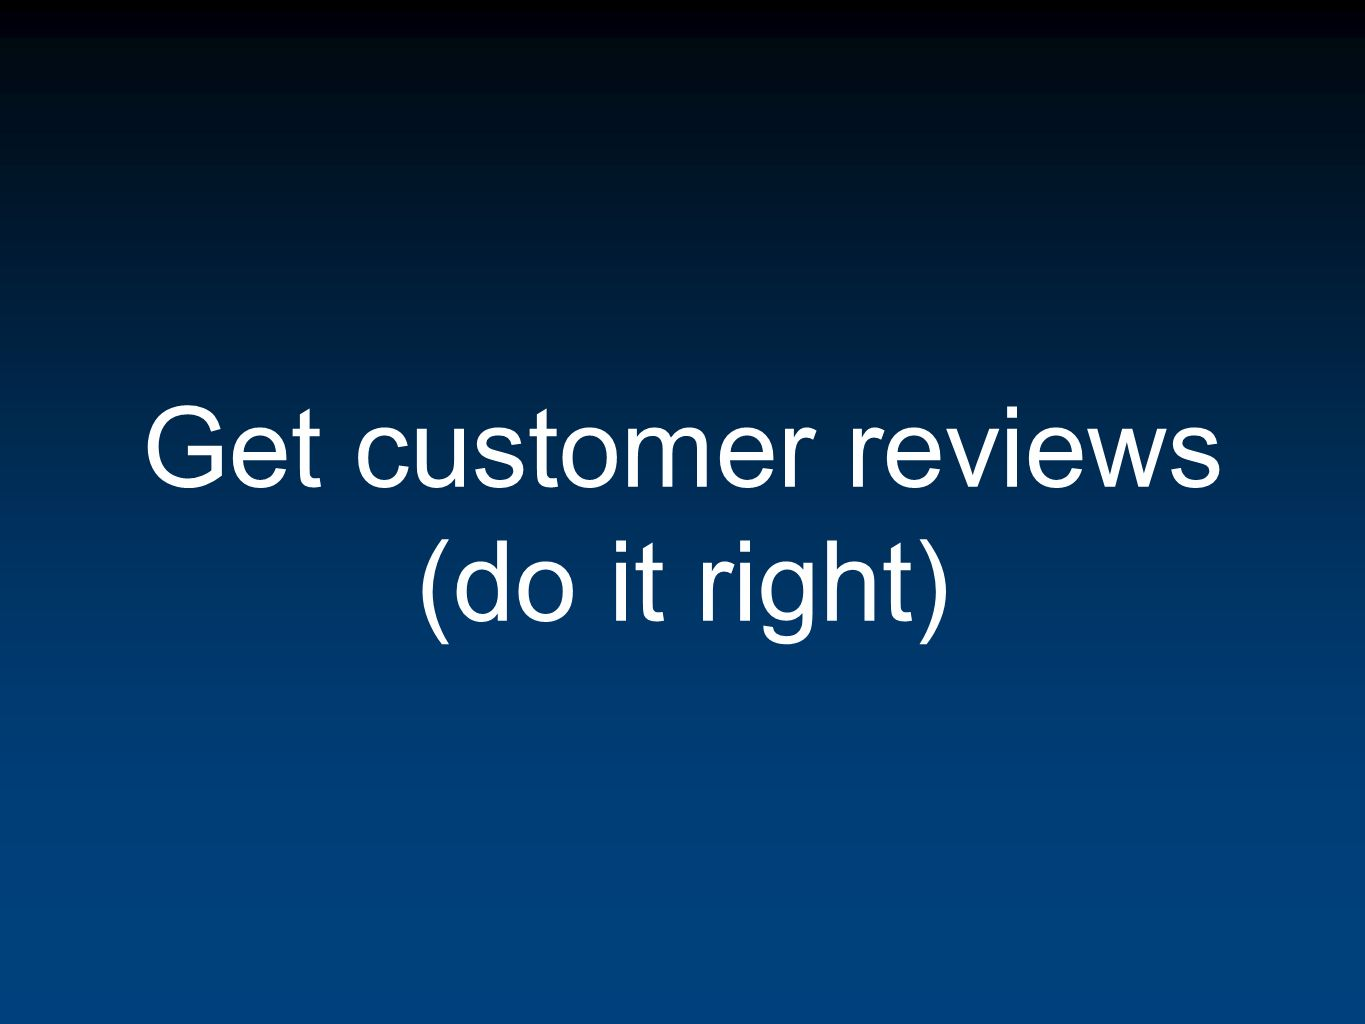 Get customer reviews (do it right)